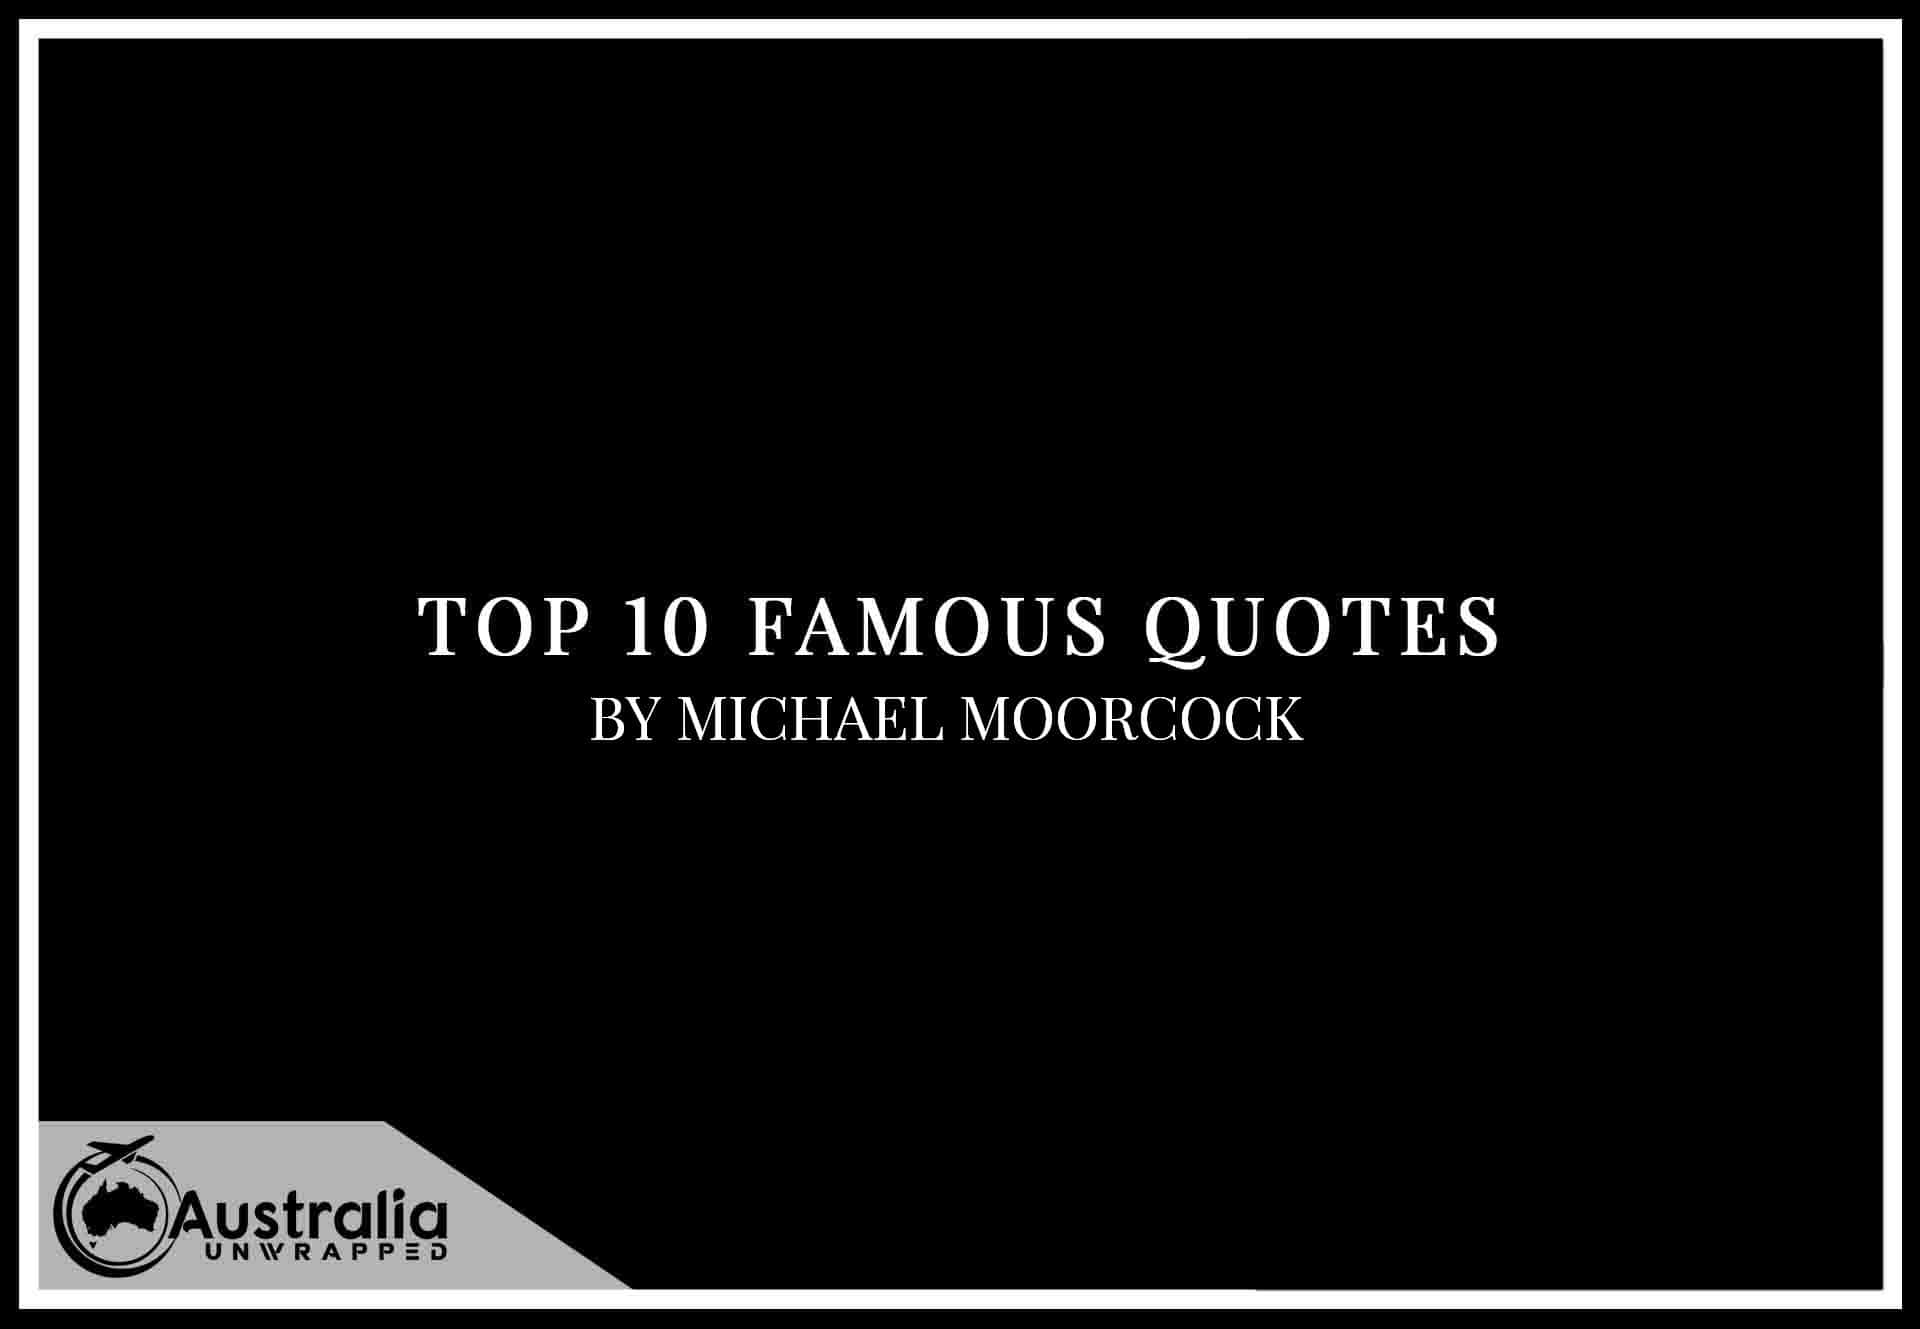 Top 10 Famous Quotes by Author Michael Moorcock